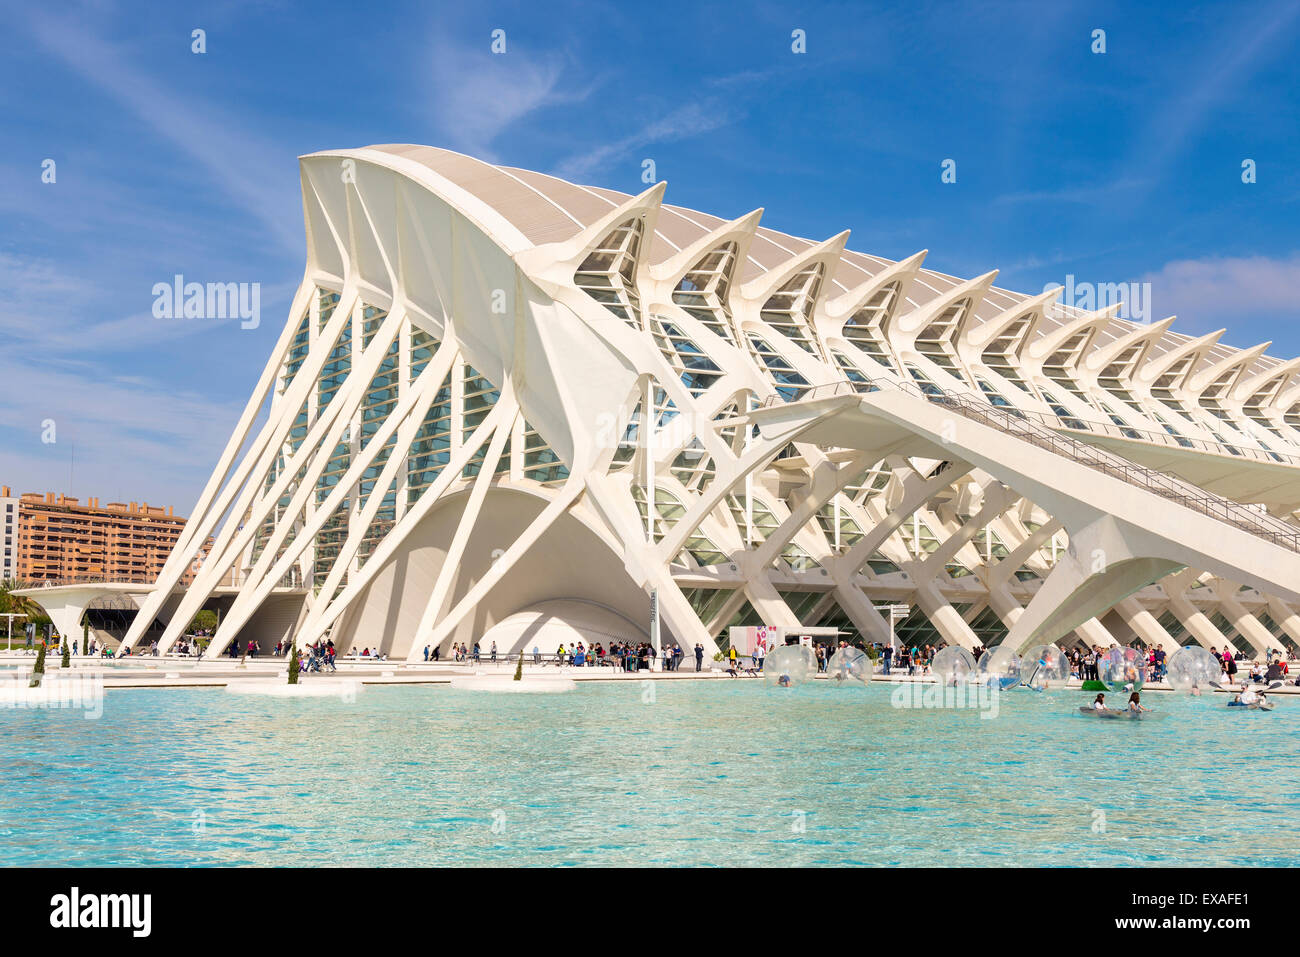 La Ciudad de las Artes y las Ciencias (City of Arts and Sciences), Valencia, Spain, Europe - Stock Image